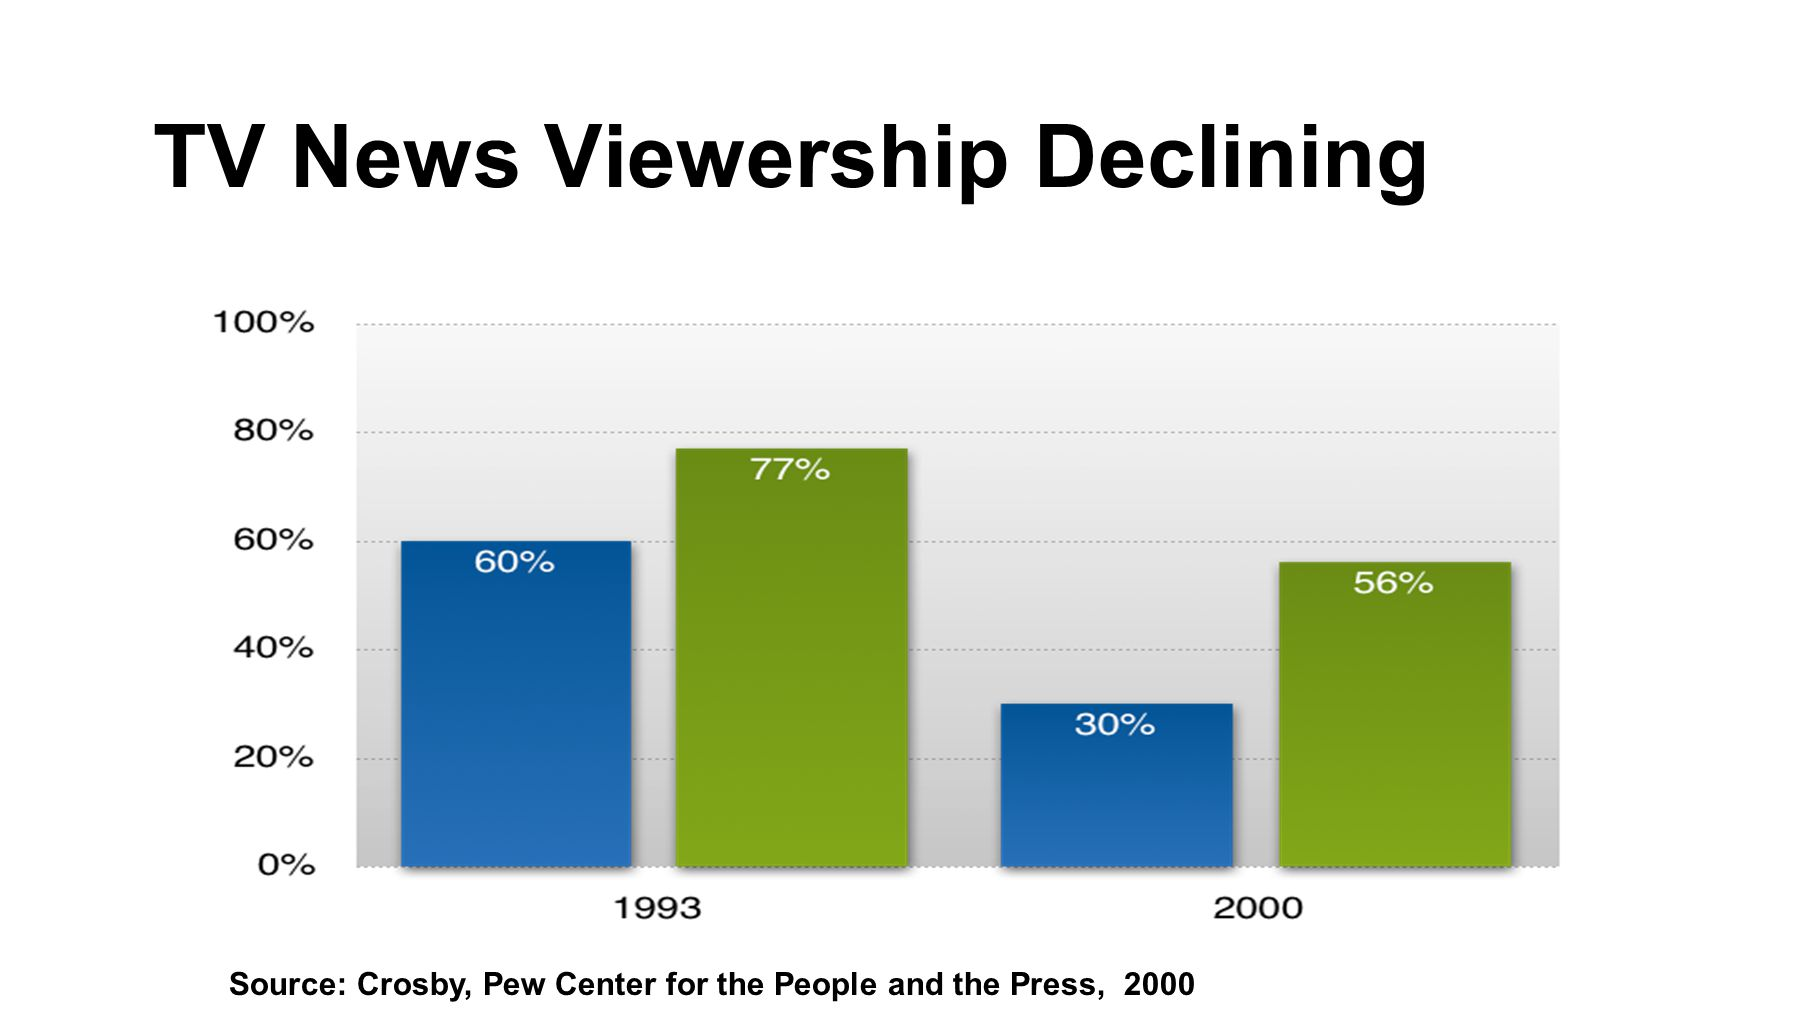 TV News Viewership Declining Source: Crosby, Pew Center for the People and the Press, 2000